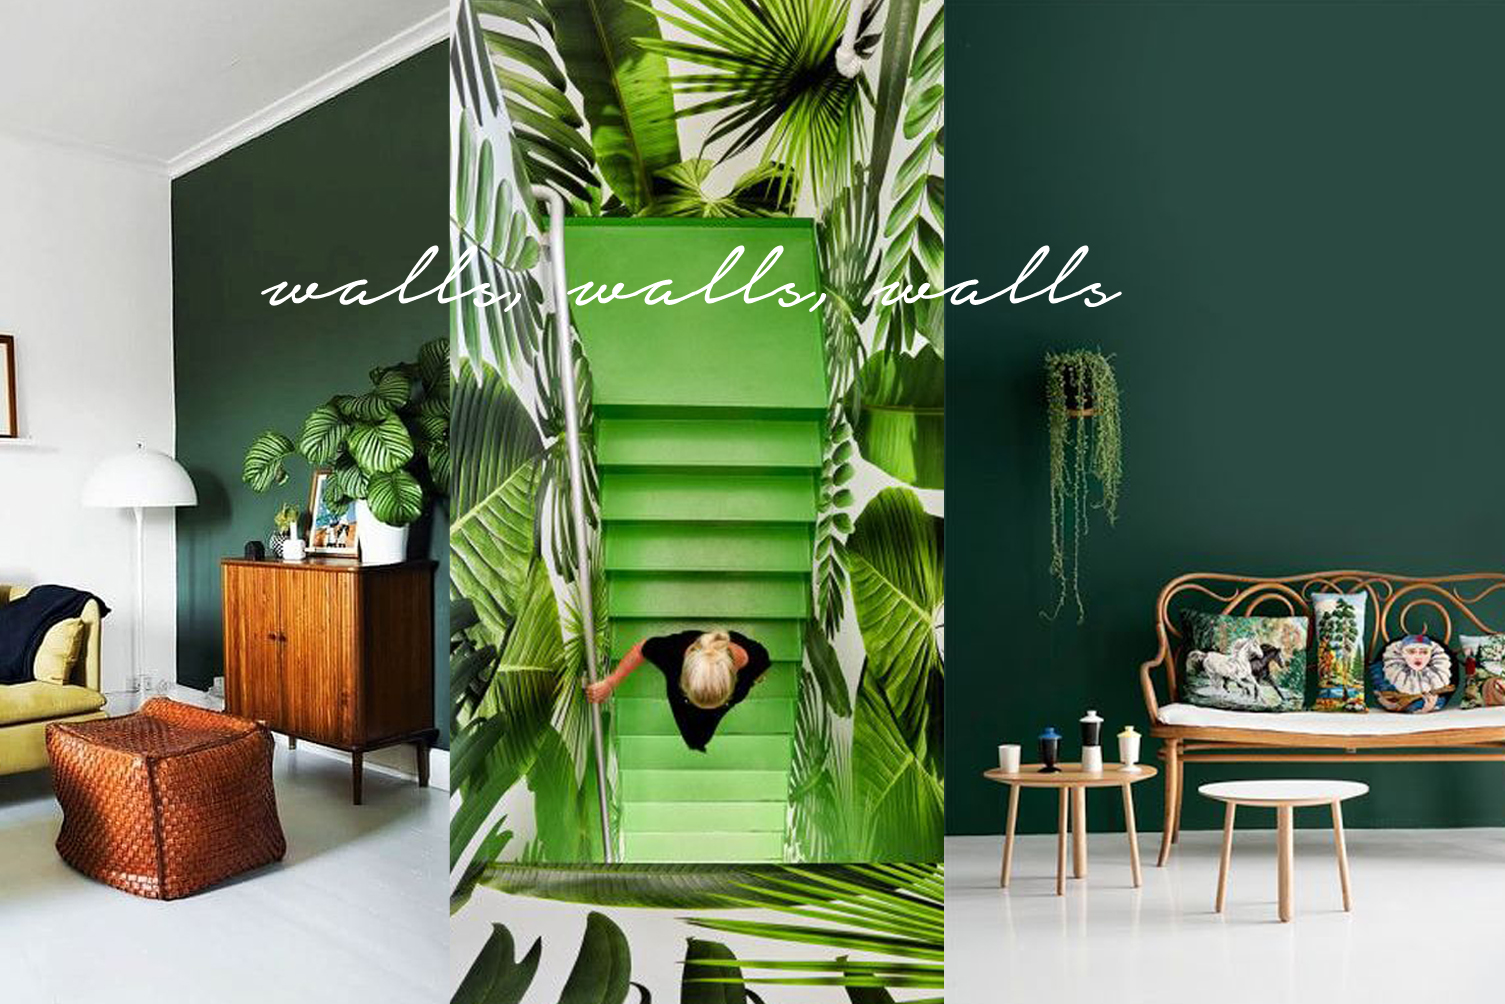 pantone greenery paint color and wallpaper interior design ideas